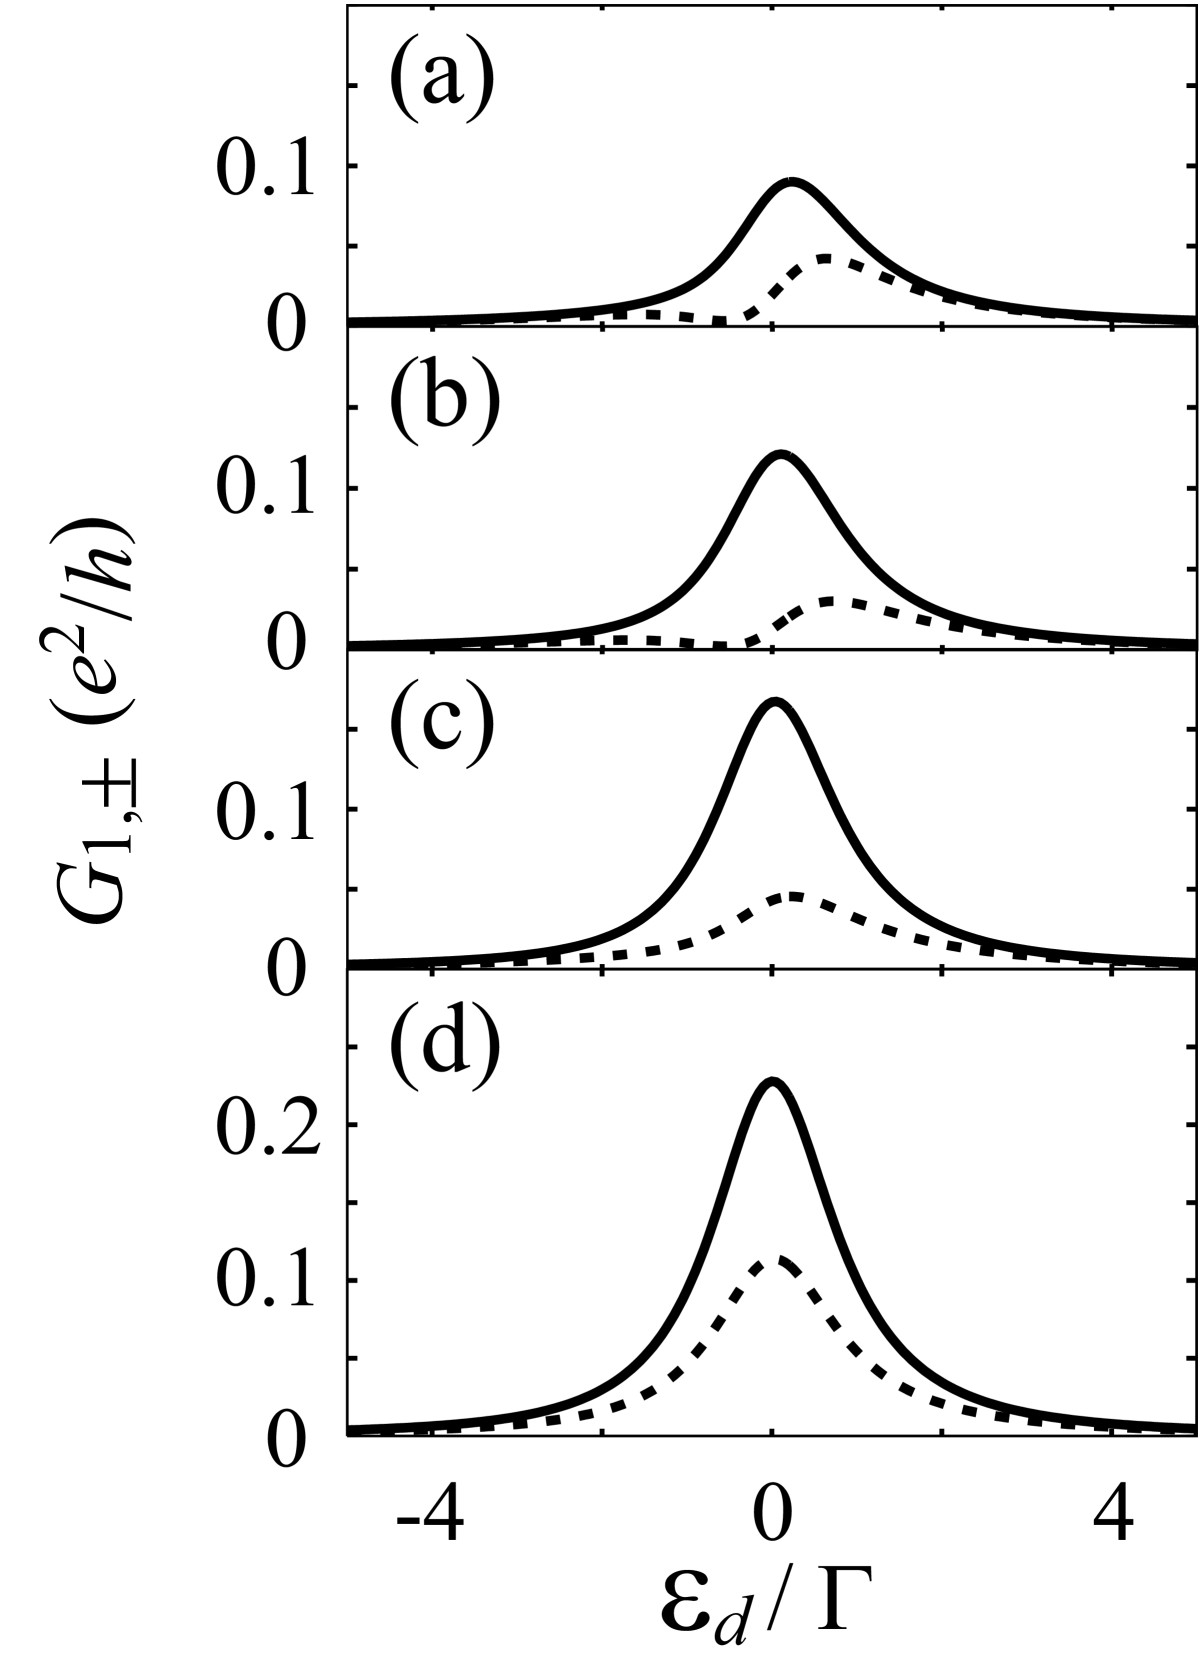 https://static-content.springer.com/image/art%3A10.1186%2F1556-276X-6-436/MediaObjects/11671_2010_Article_549_Fig2_HTML.jpg